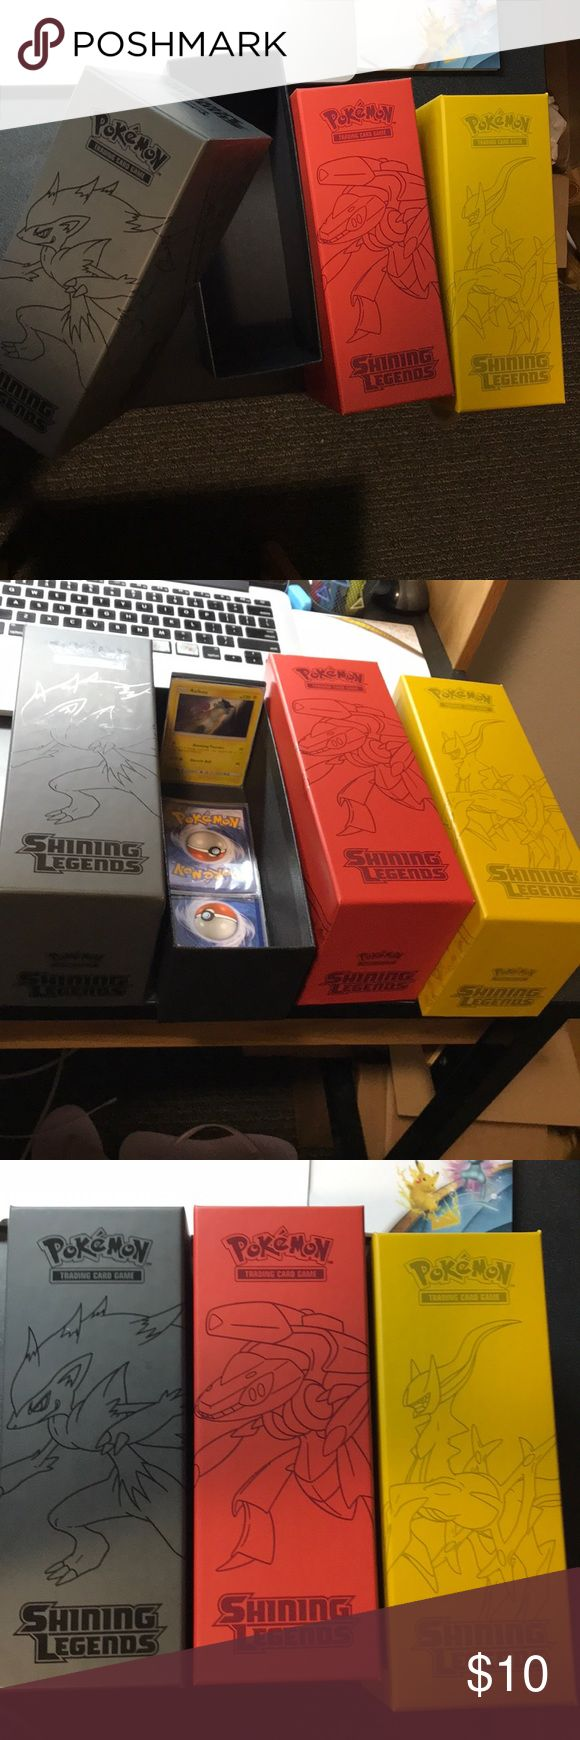 Pokemon card boxes 3 deck boxes for any trading card.  Pokemon shining legends themed  Will throw in pokemon cards when purchased! Pokemon Other